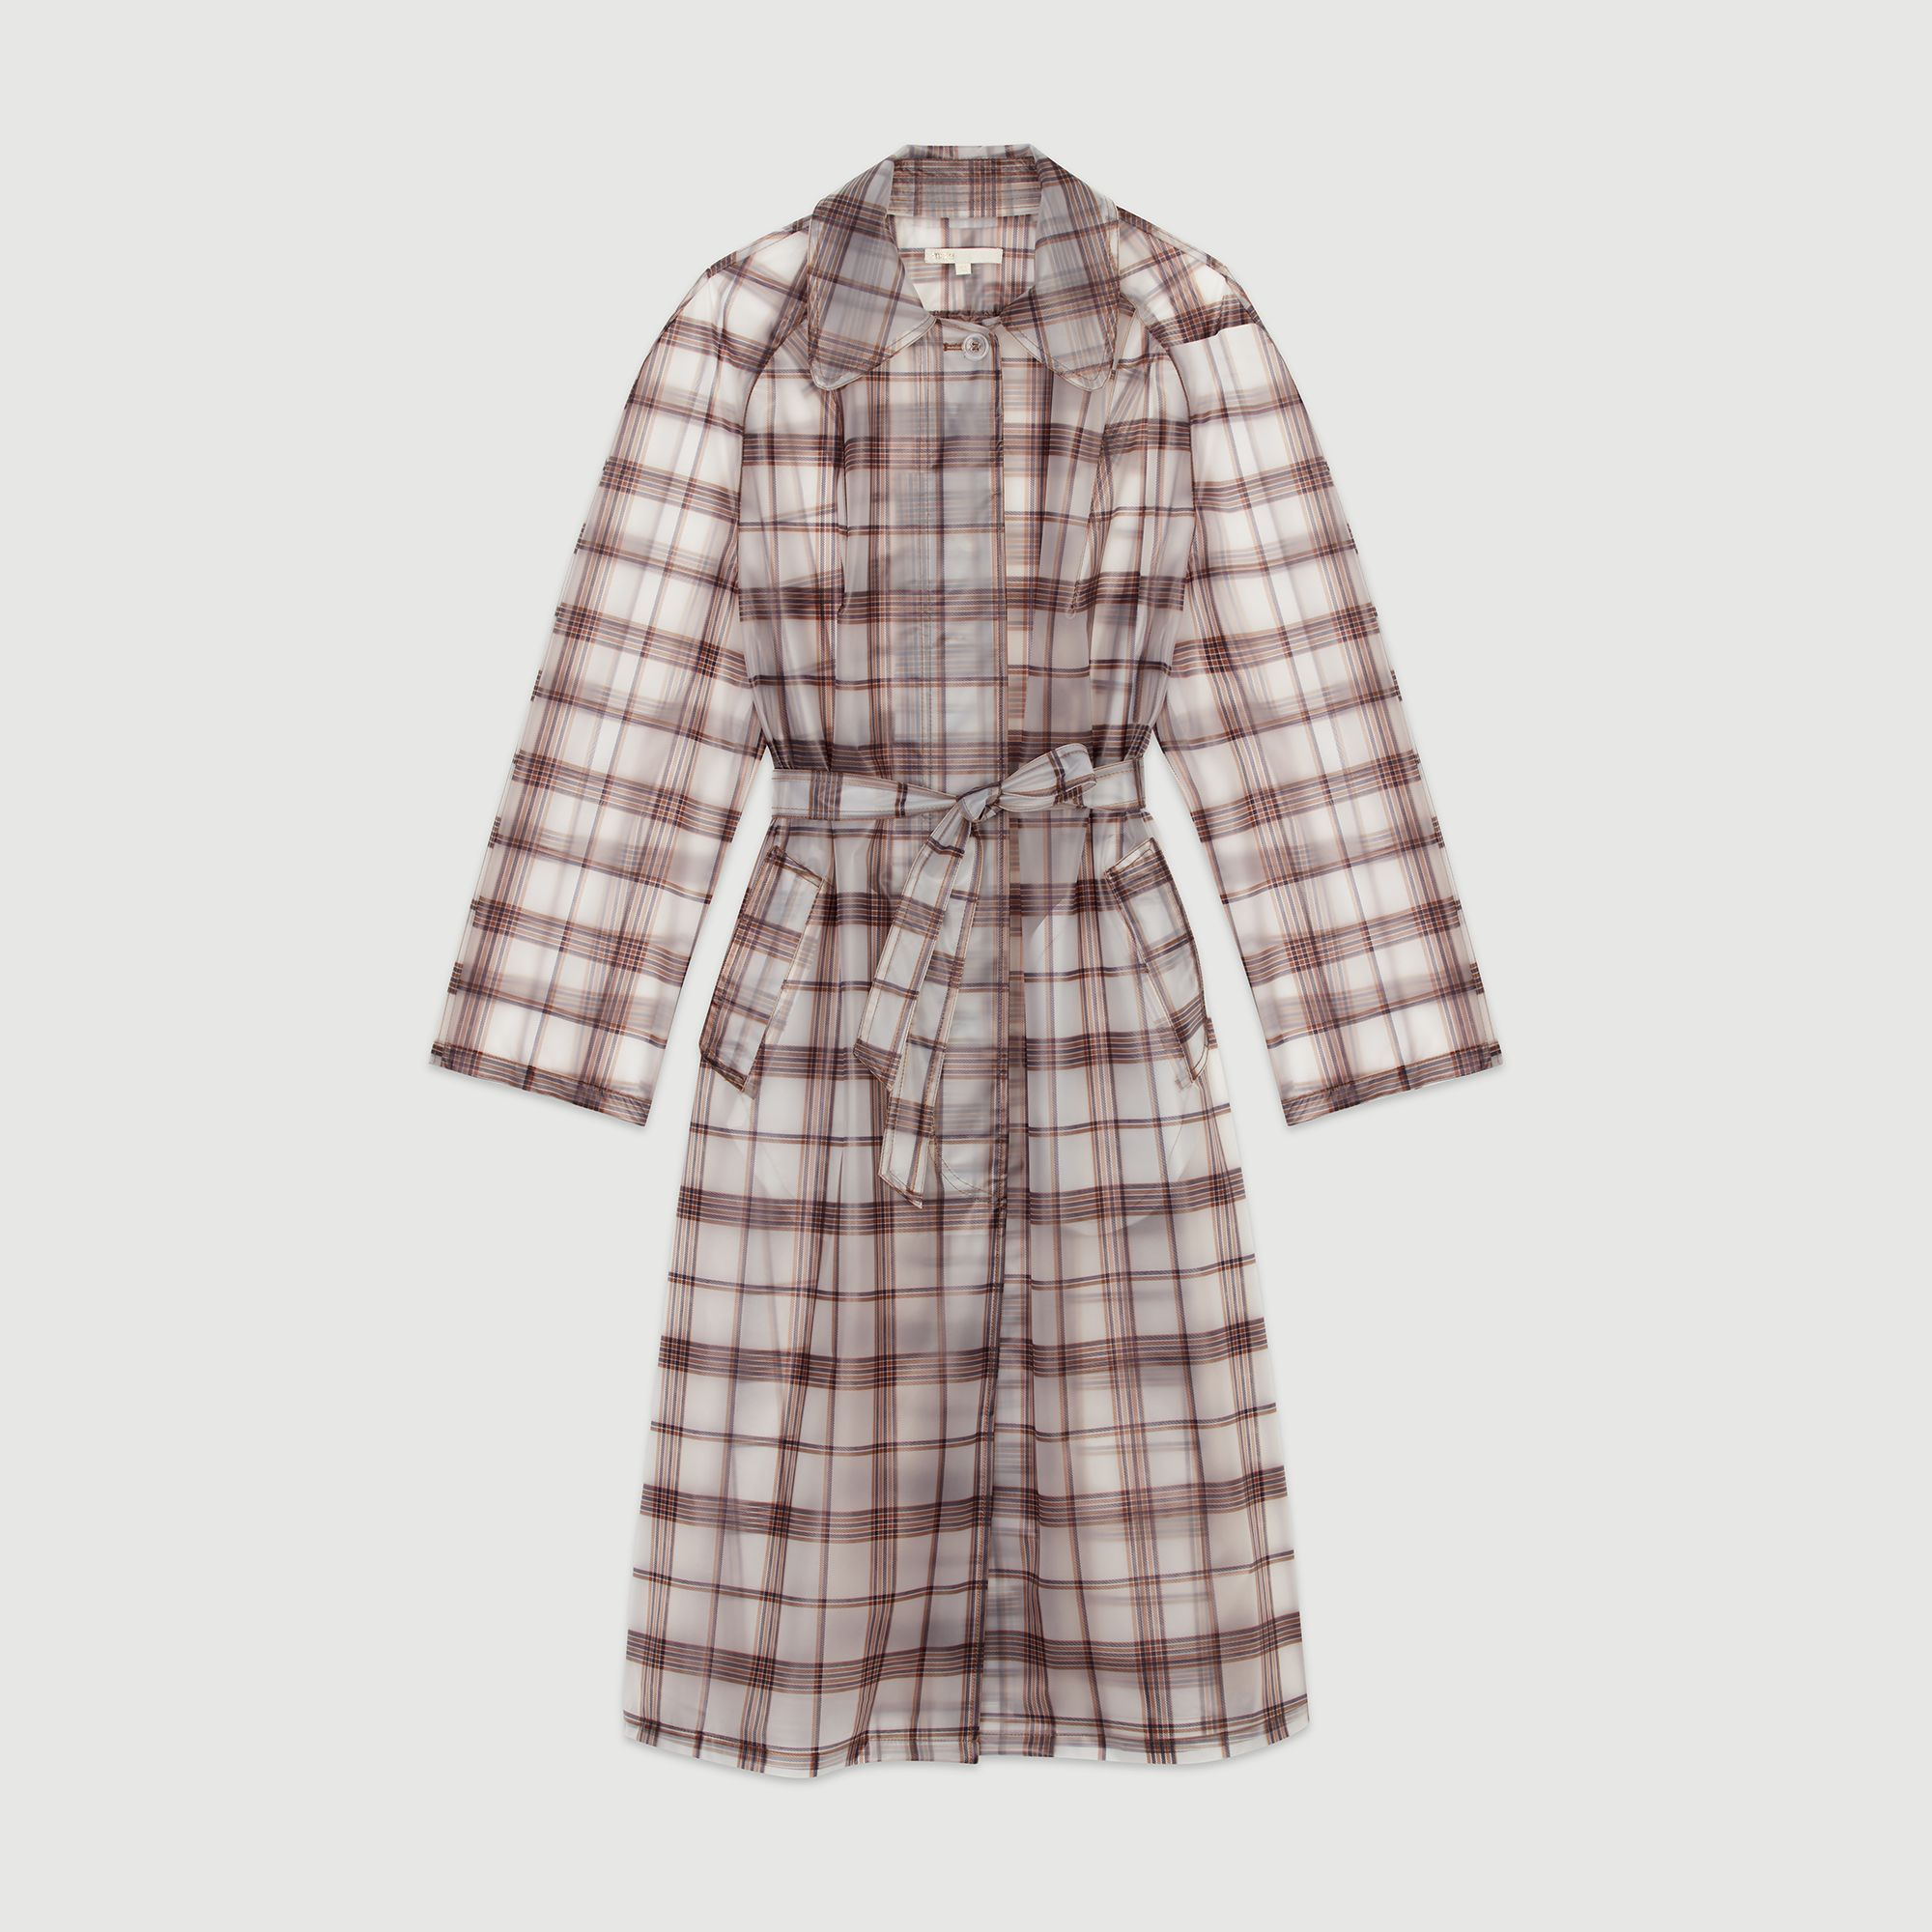 Checkered Windproof Jacket Maje maje.com $255.00 SHOP NOW Transparent plaid is a cool upgrade from classic khaki.